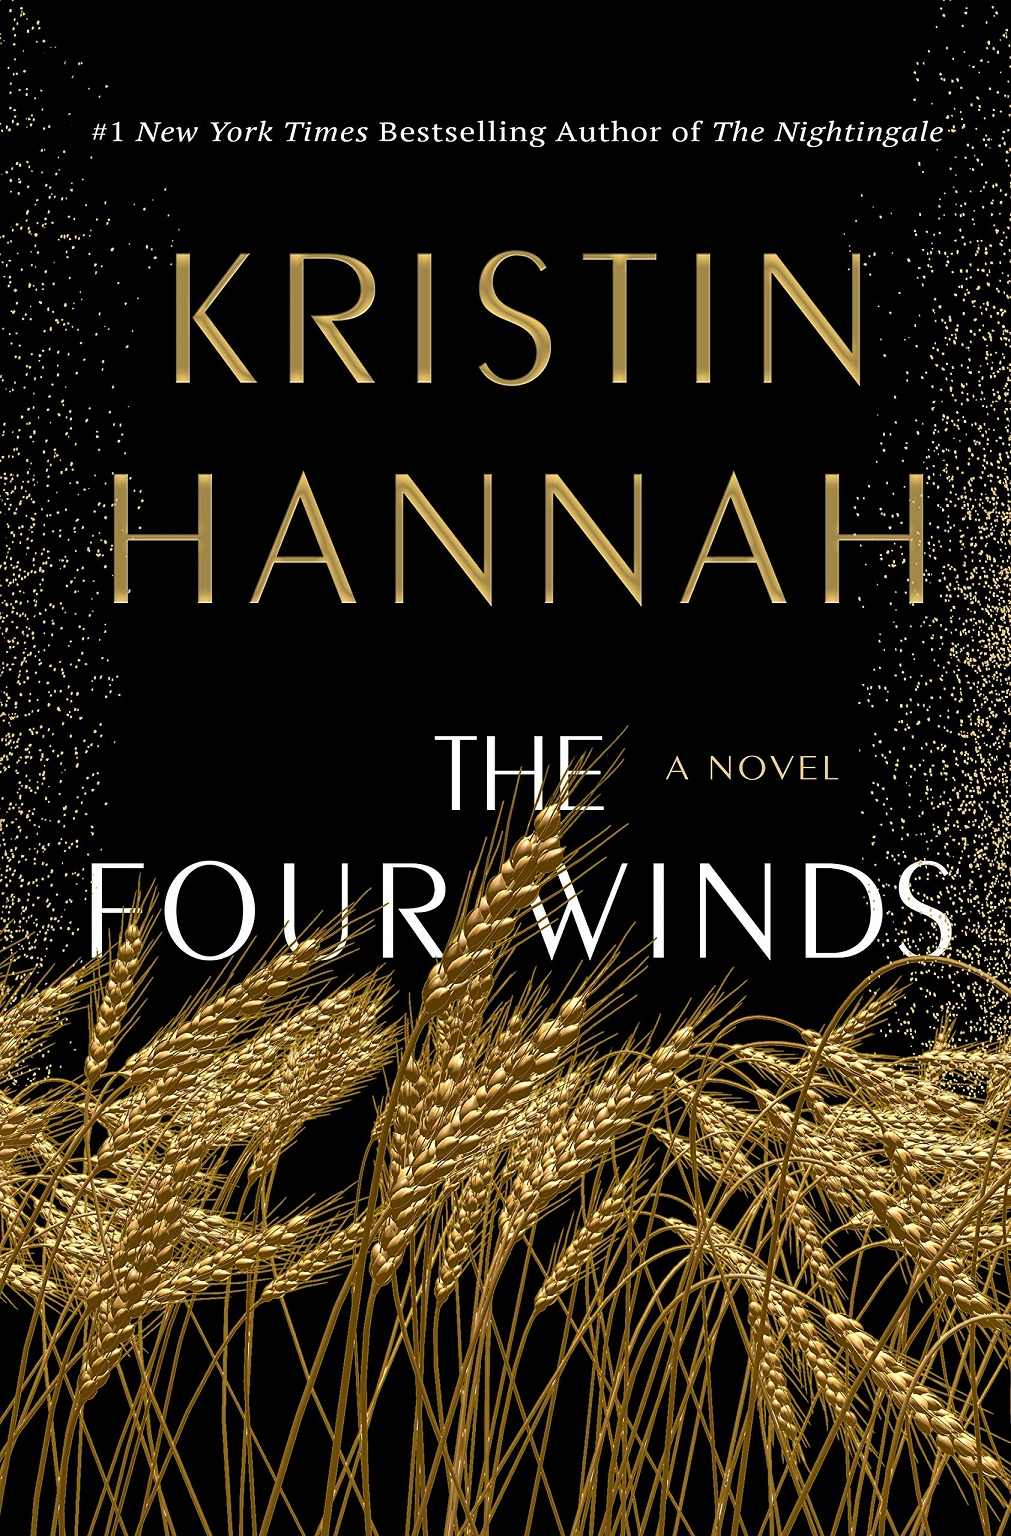 The Four Winds: A Novel from Amazon 4-star